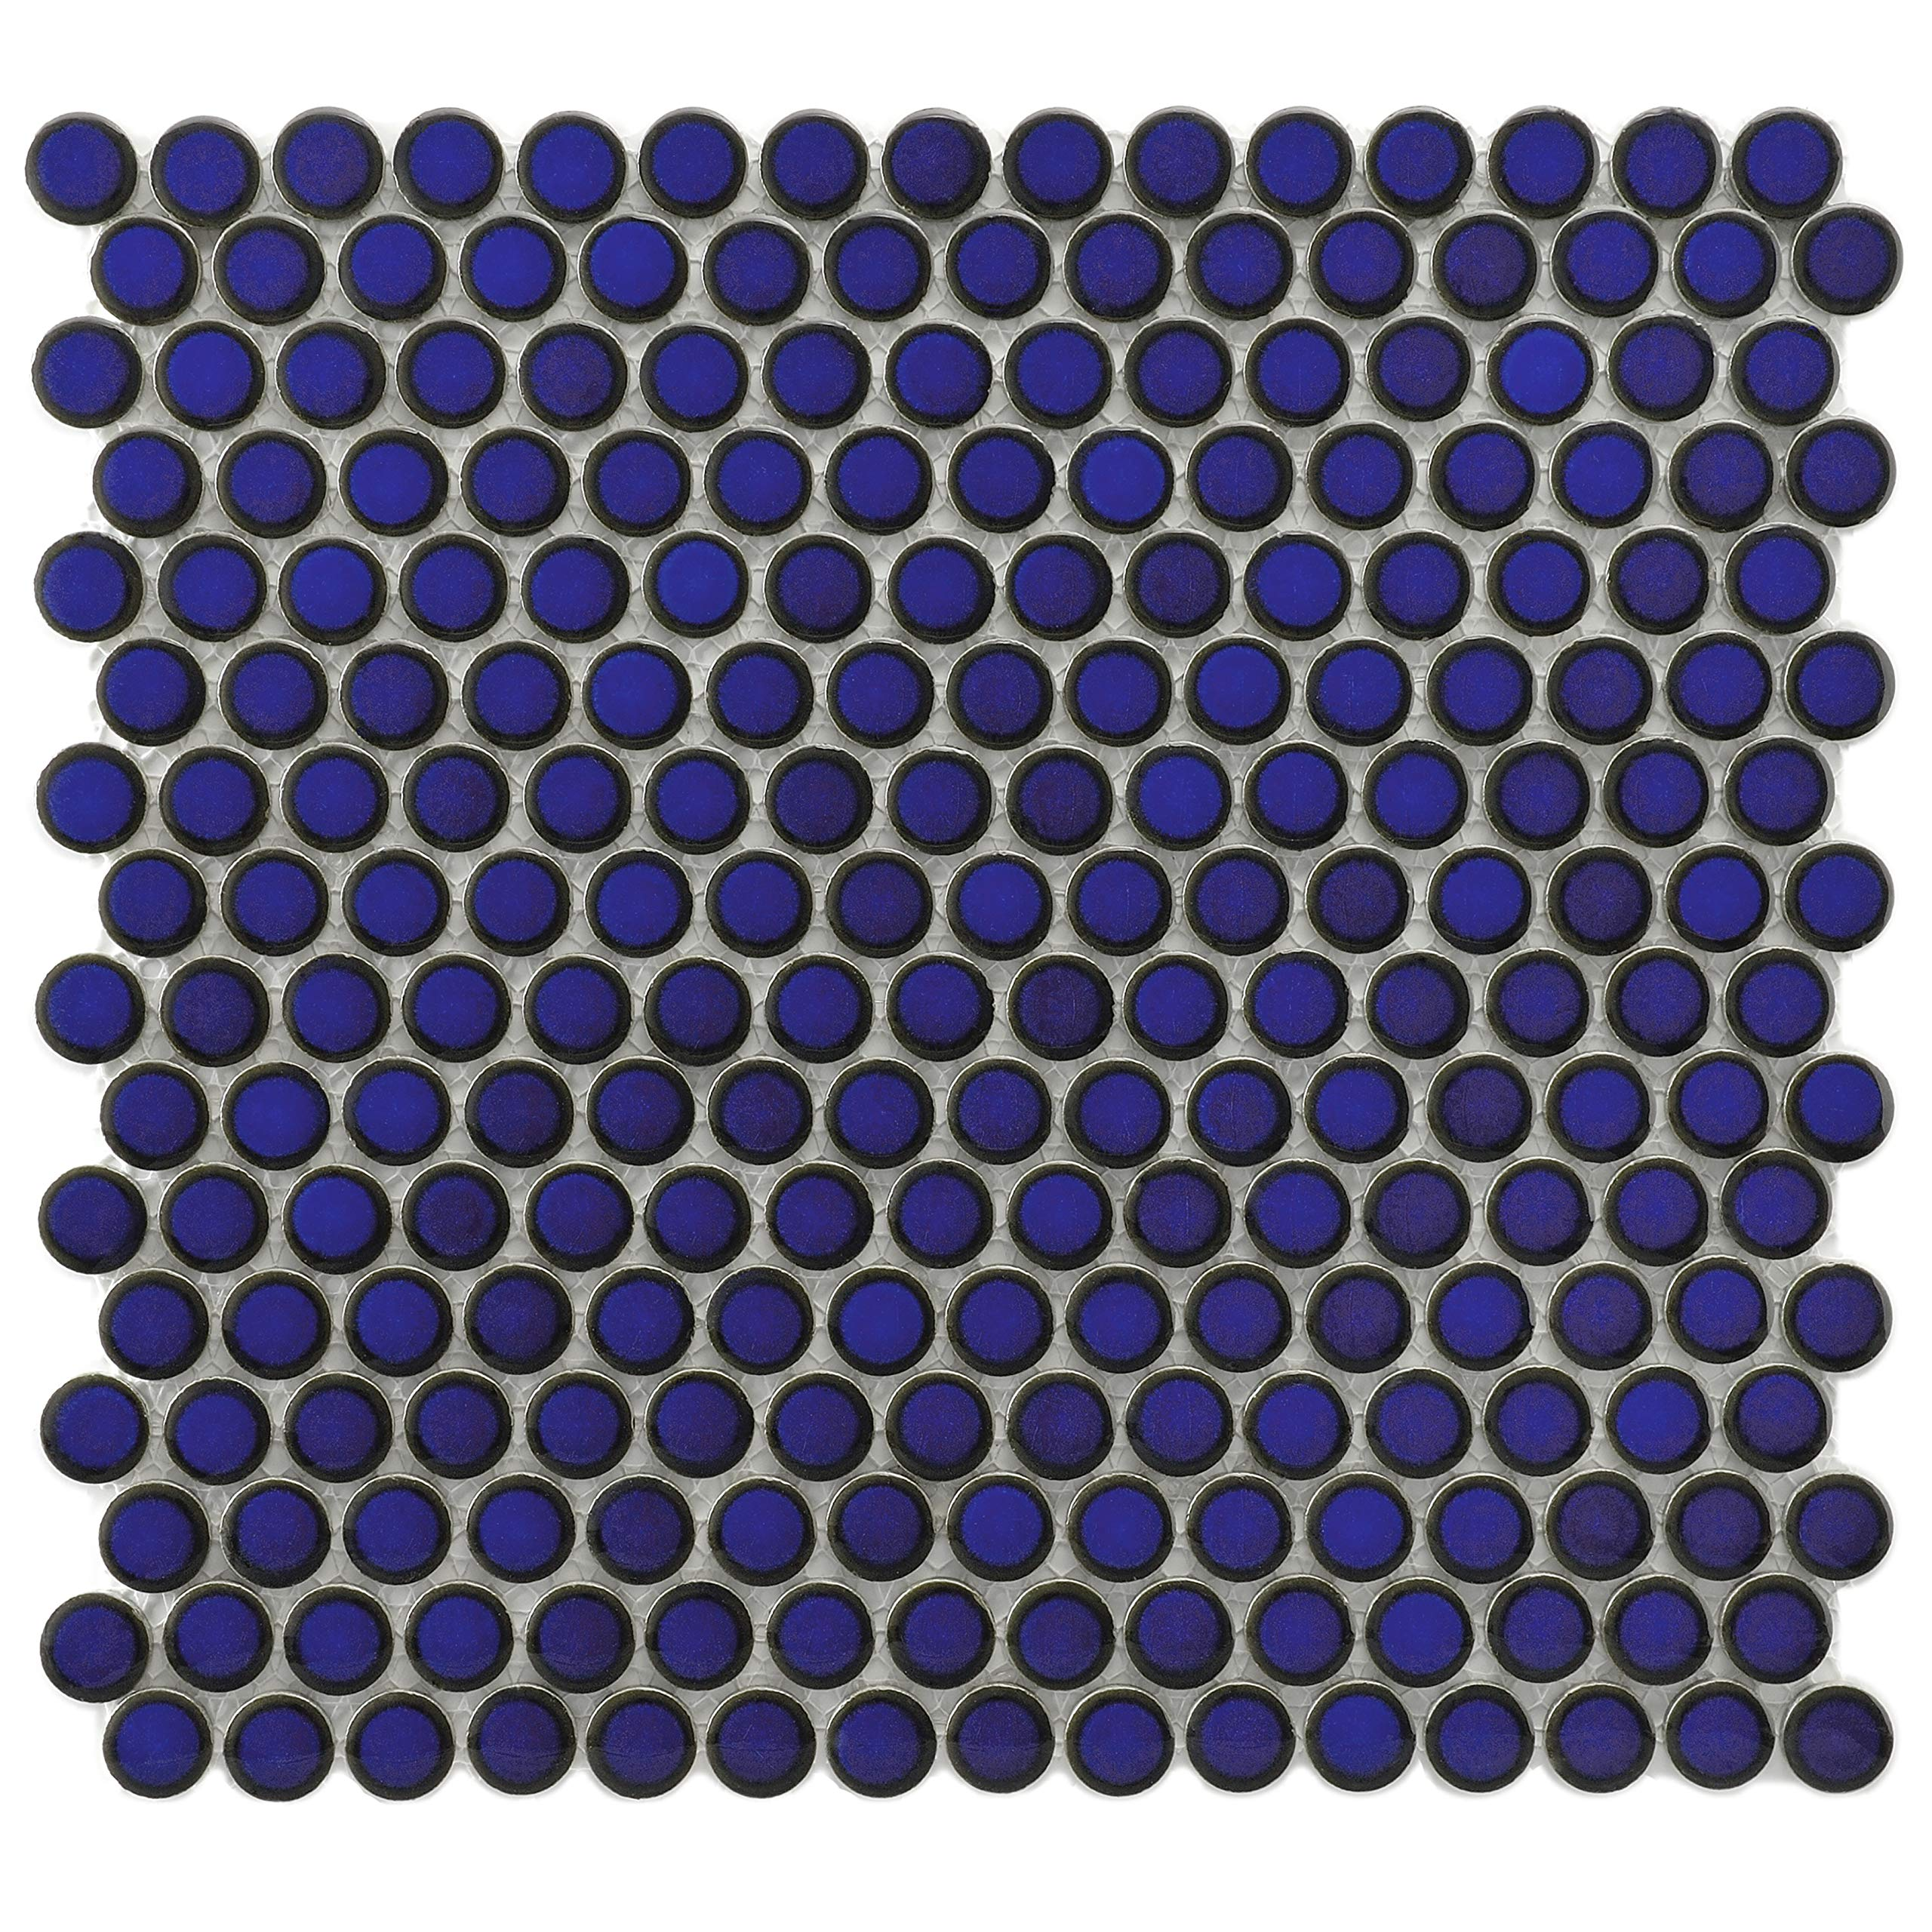 SomerTile FKOMPR24 Penny Eye Porcelain Mosaic Floor and Wall, 12'' x 12.625'', Blue Tile, 10 Piece